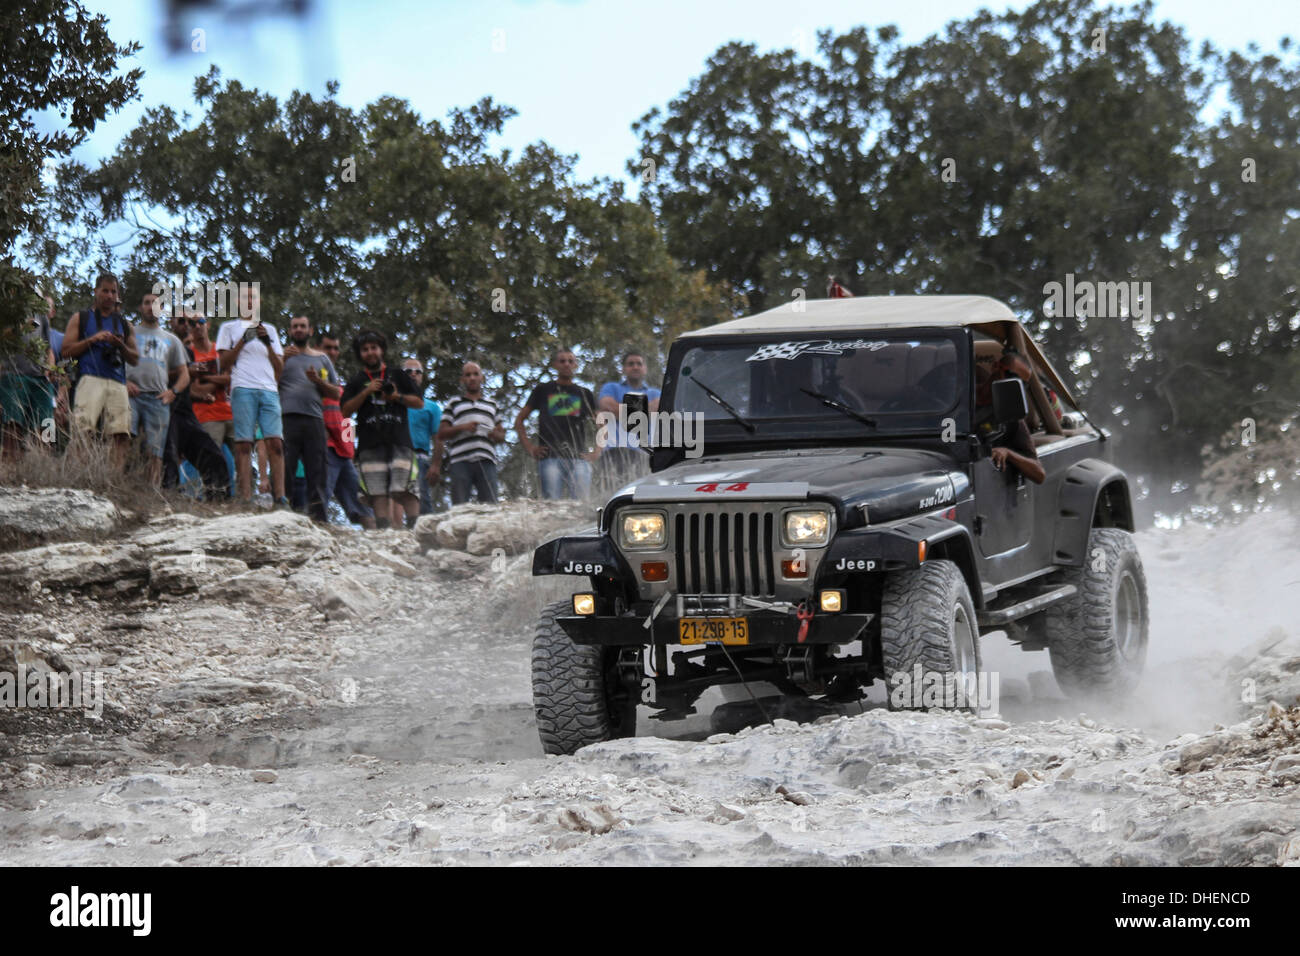 Cross Country 4x4 >> Cross Country Rally A 4x4 Event Photographed In Israel A